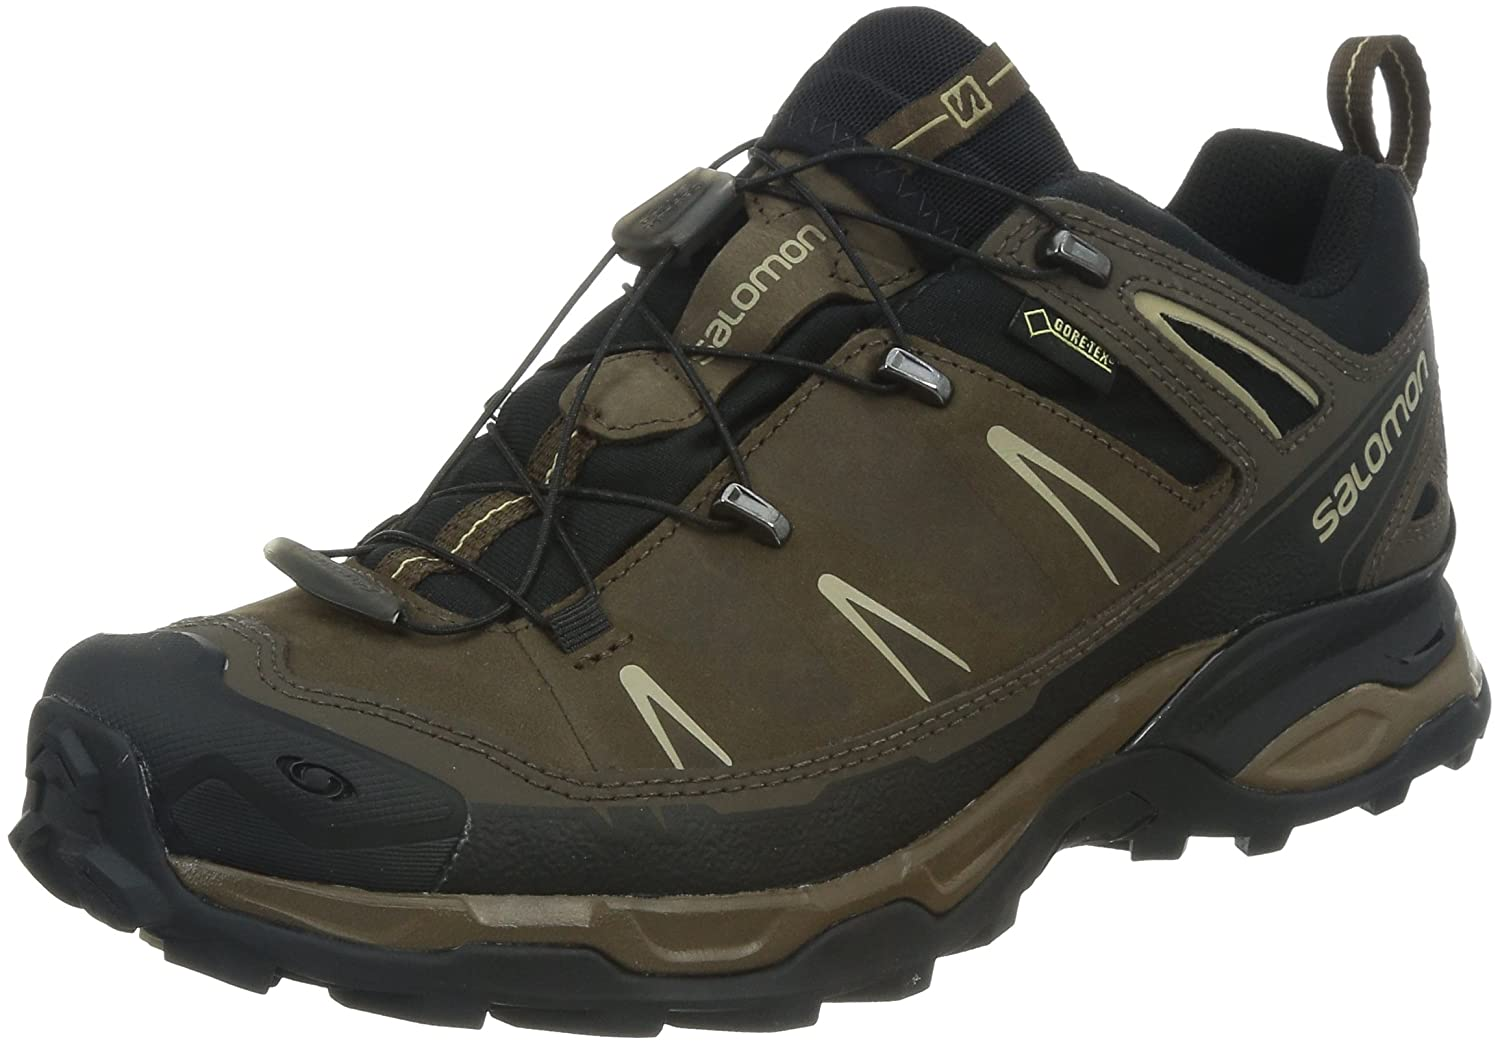 Amazon.it: Salomon Marrone Scarpe: Scarpe e borse